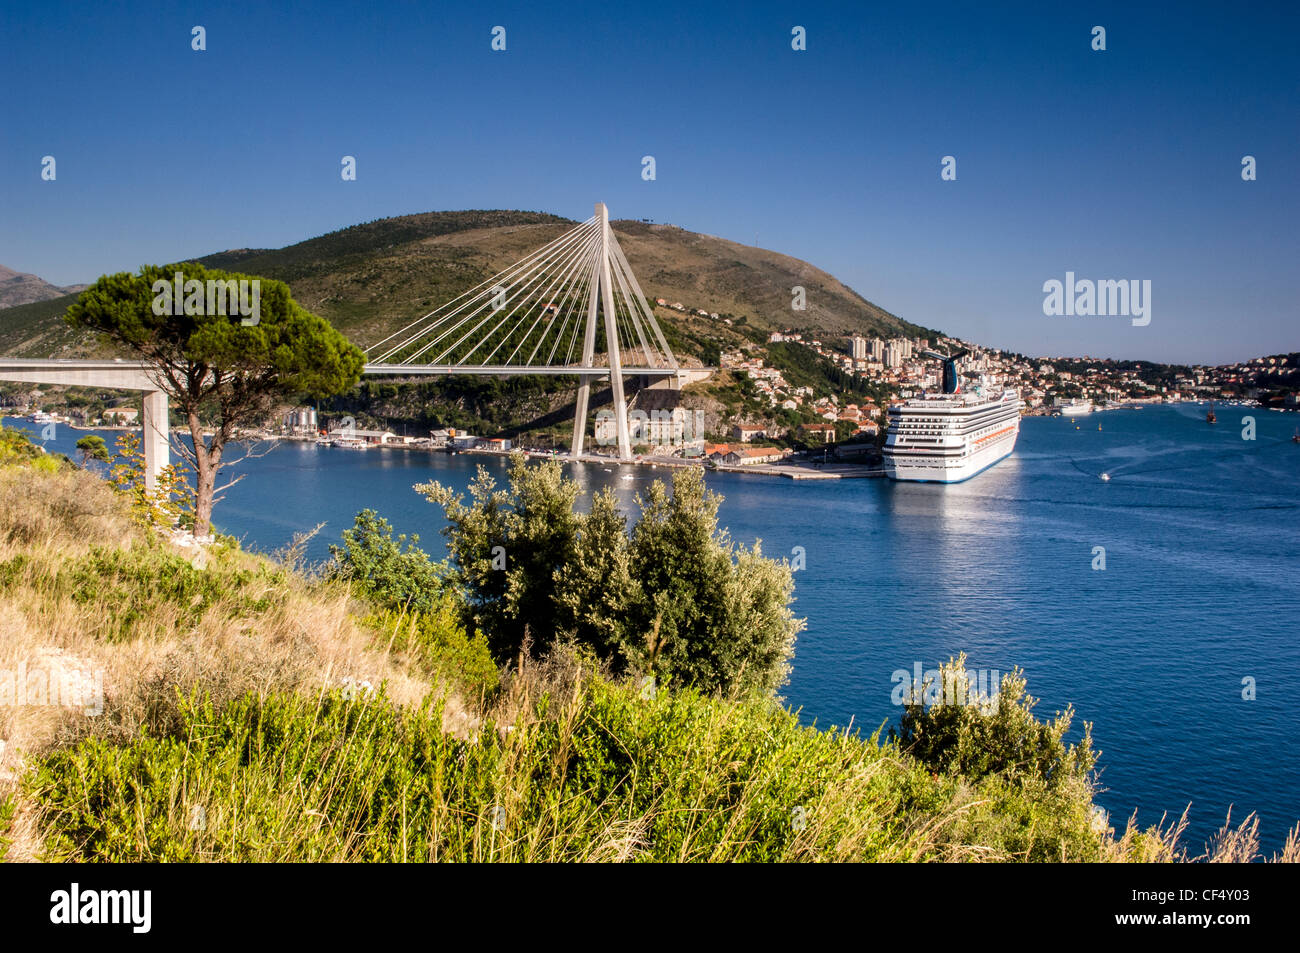 Harbour with large cruise liner in Dubrovnik, Croatia - Stock Image